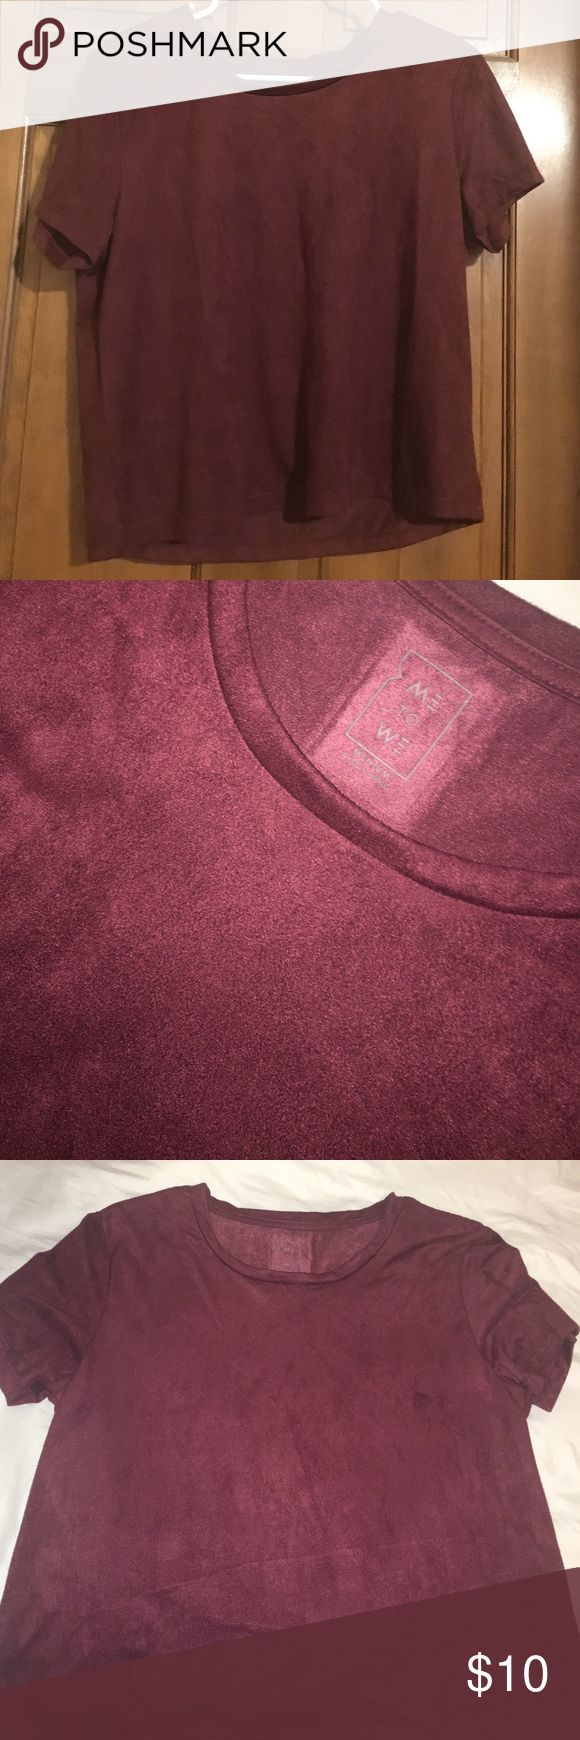 Maroon velvet T-shirt from Pacsun Super soft velvet Tee that's in perfect condition, only worn once. PacSun Tops Tees - Short Sleeve